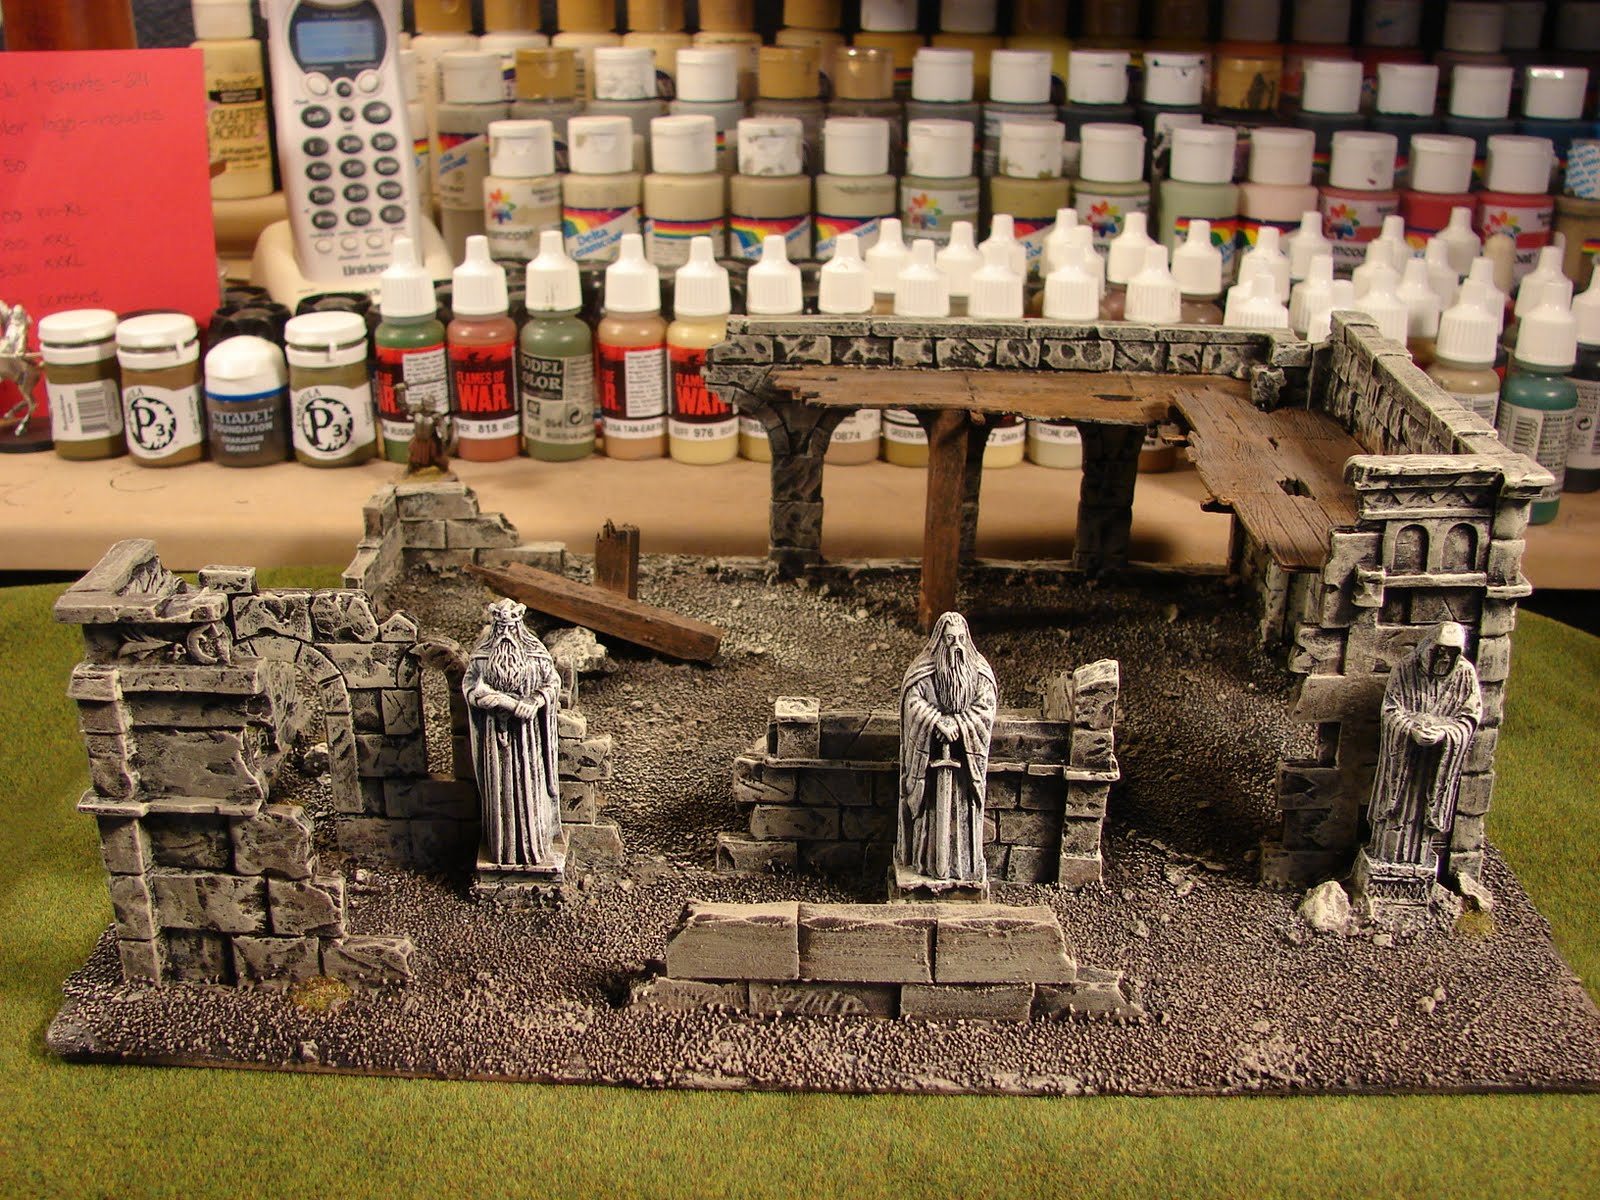 Games workshop colorado - Well I Started With 8 Of The Osgiliath Terrain Kits From Gamesworkshop Here Are A Few Of The Completed Terrain Pieces For The Table